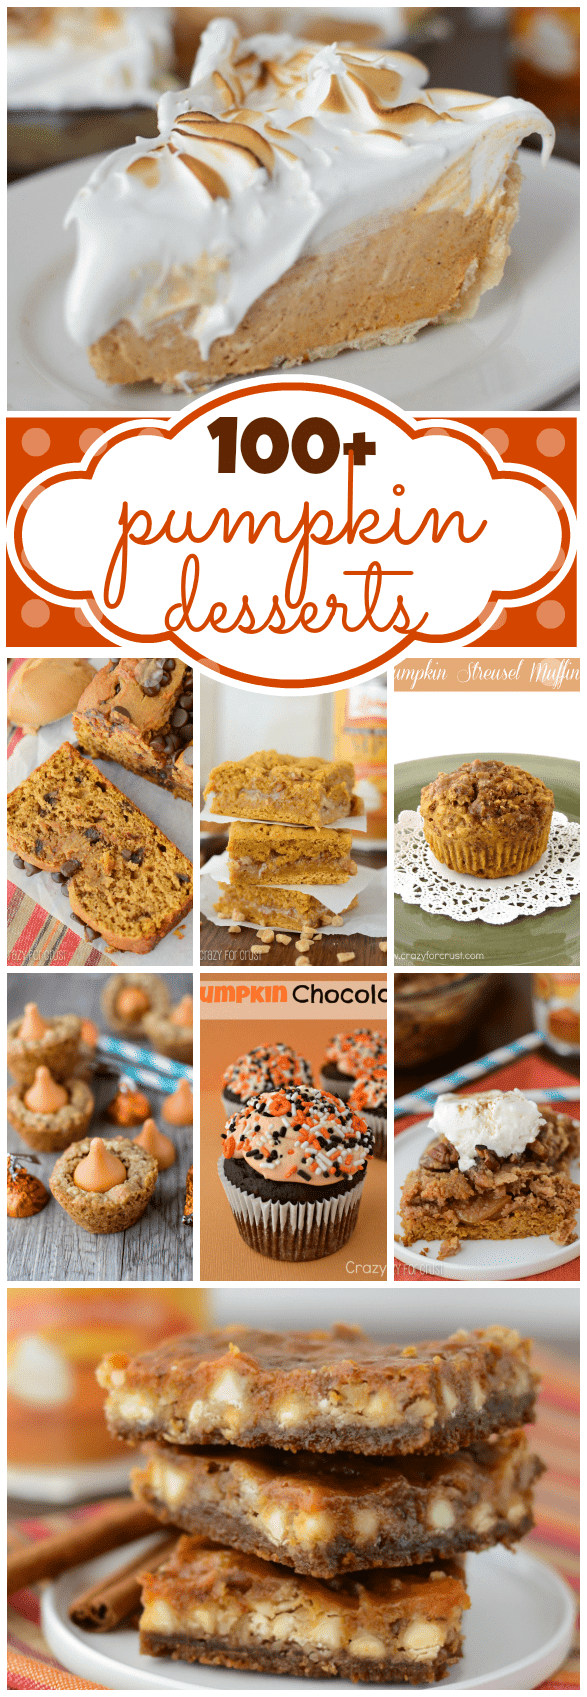 Over 100 Pumpkin Dessert Recipes